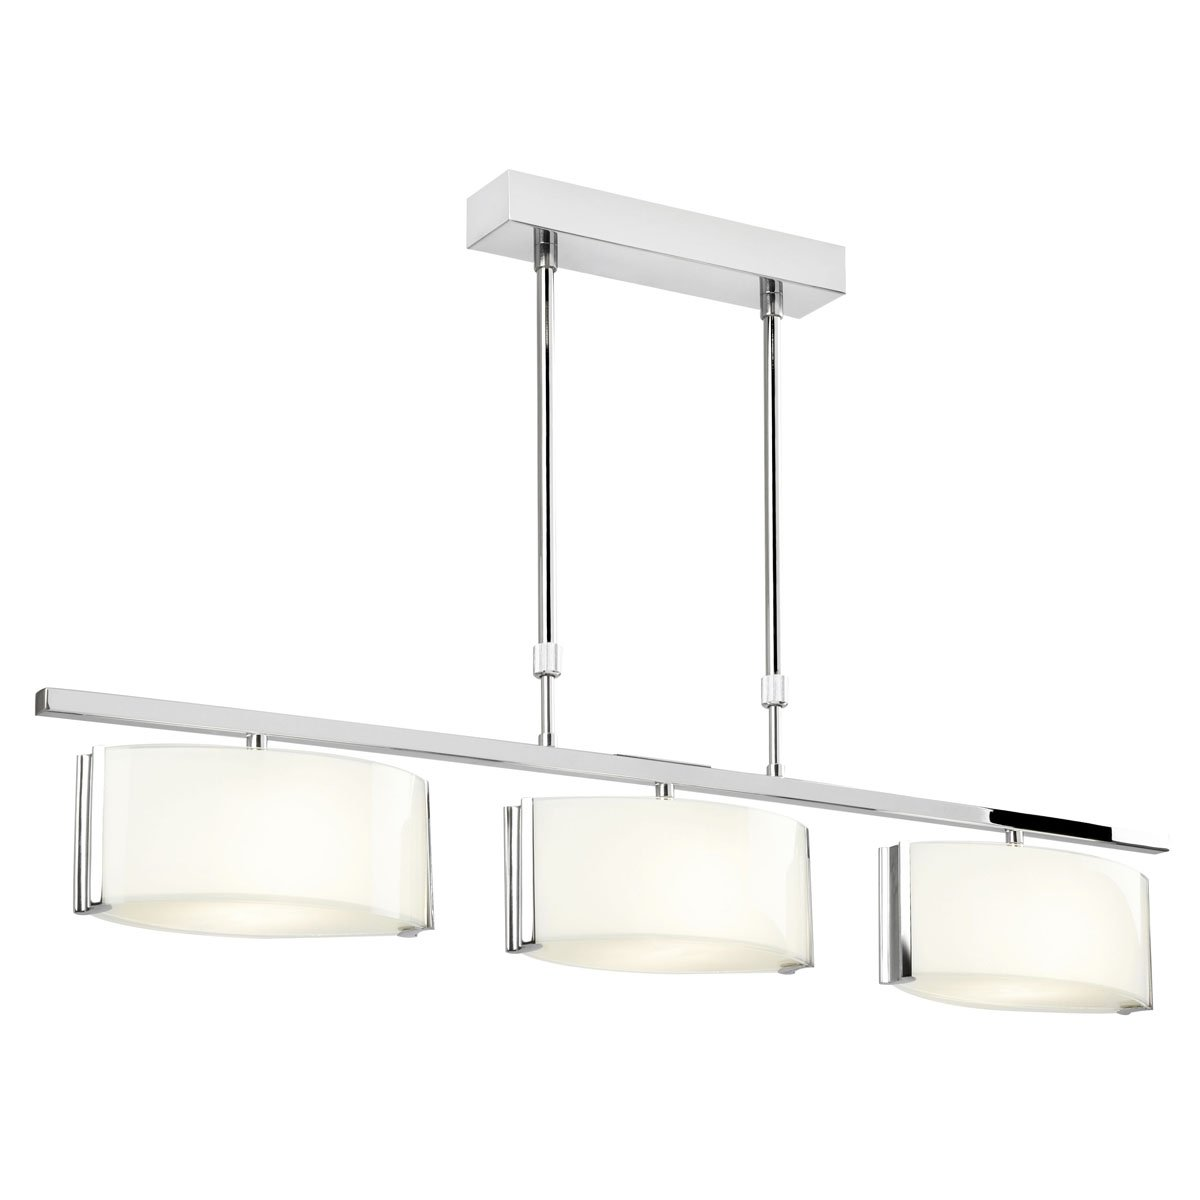 kitchen island breakfast bar pendant lighting. Kitchen Island Breakfast Bar Pendant Lighting L